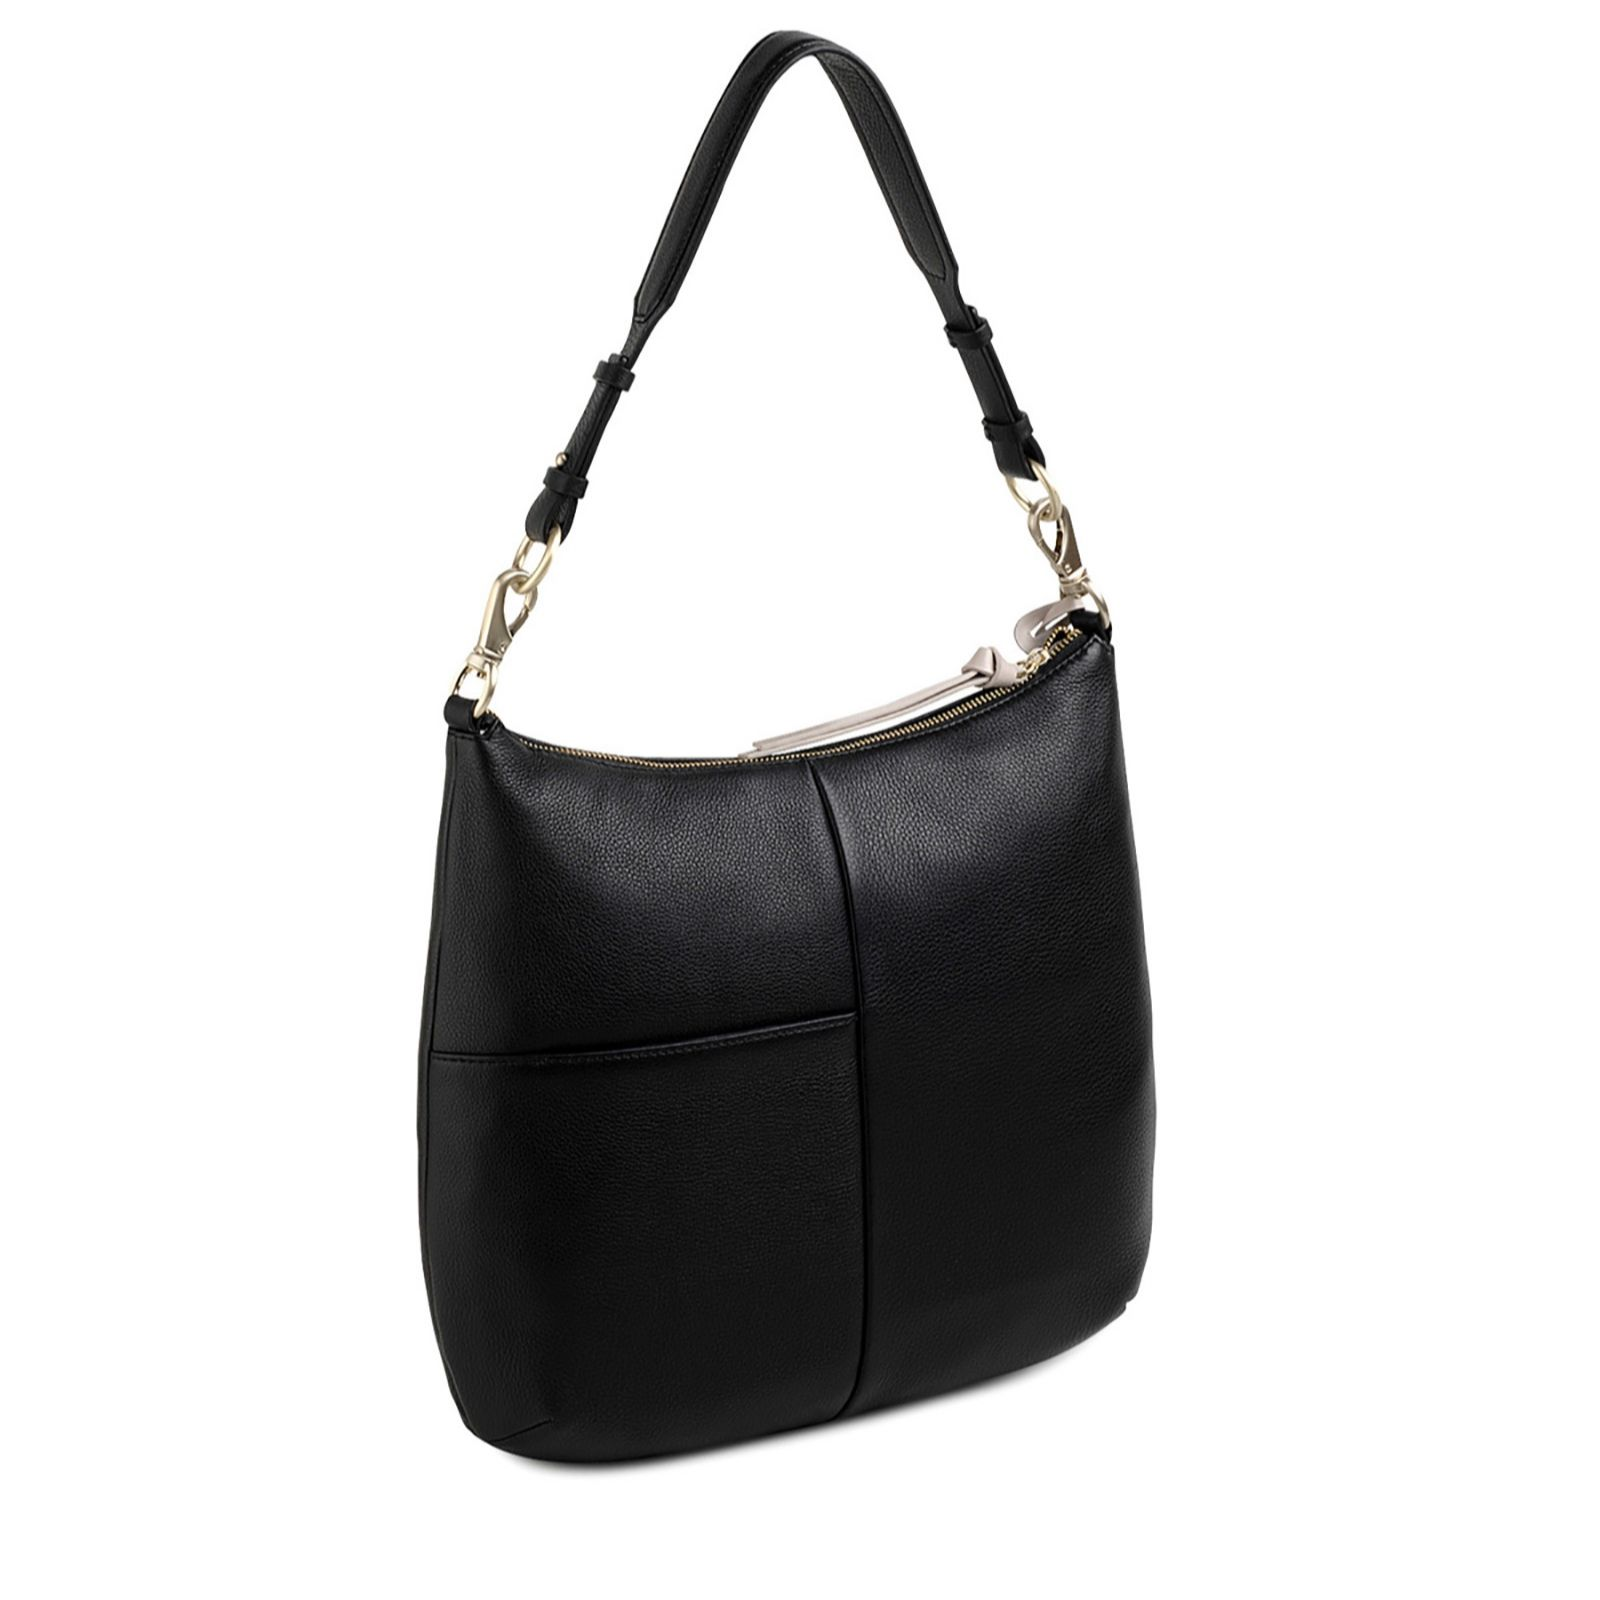 fd7cc44887c28 Radley London Feathers Court Hobo Bag - QVC UK